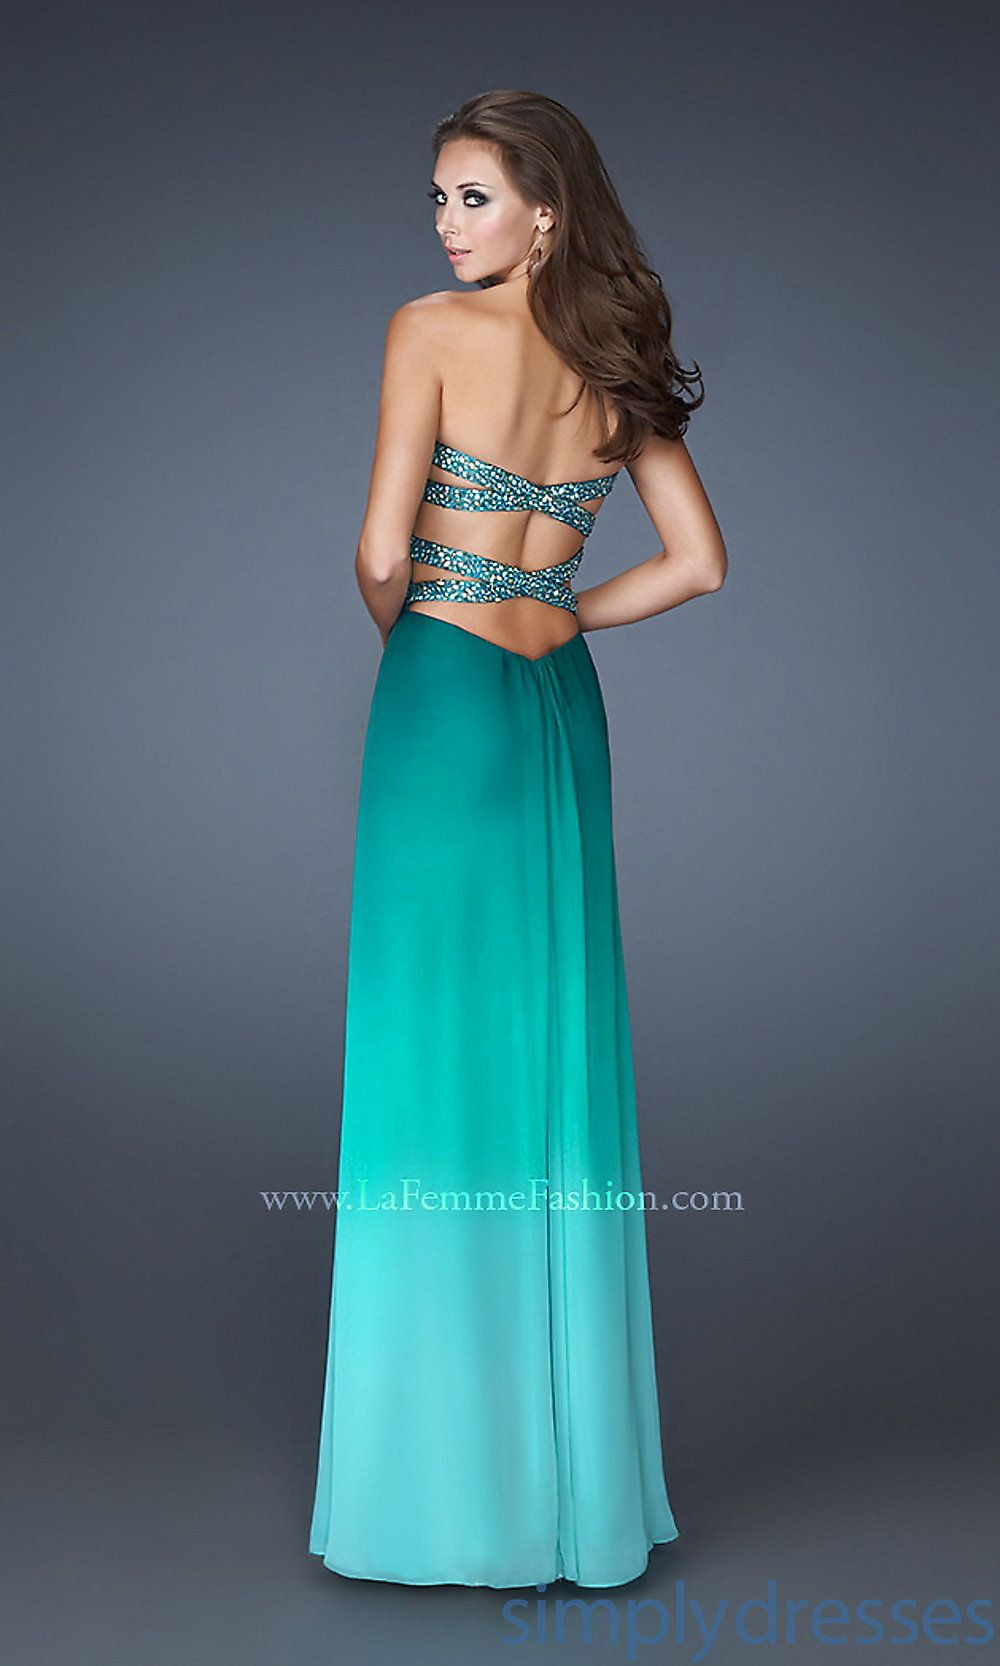 Open back prom dress by la femme dresses pinterest ombre gown